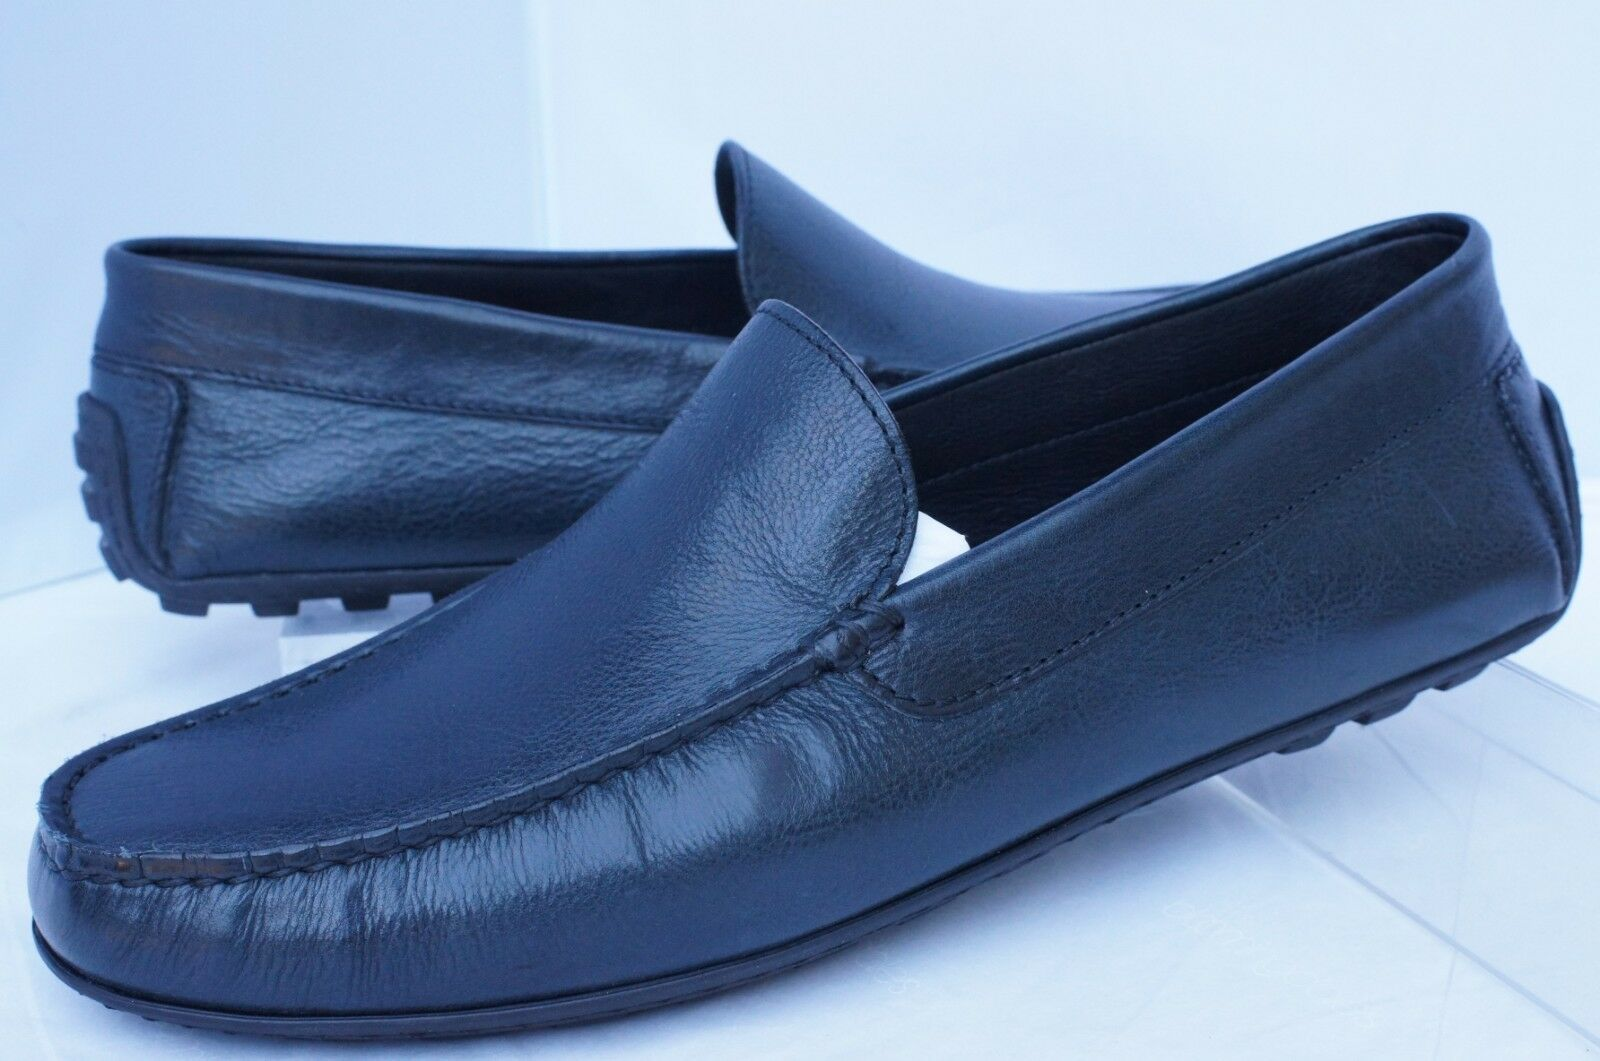 New A.testoni Shoes Drivers Size 9.5 Friendly Navy Loafers Pelle